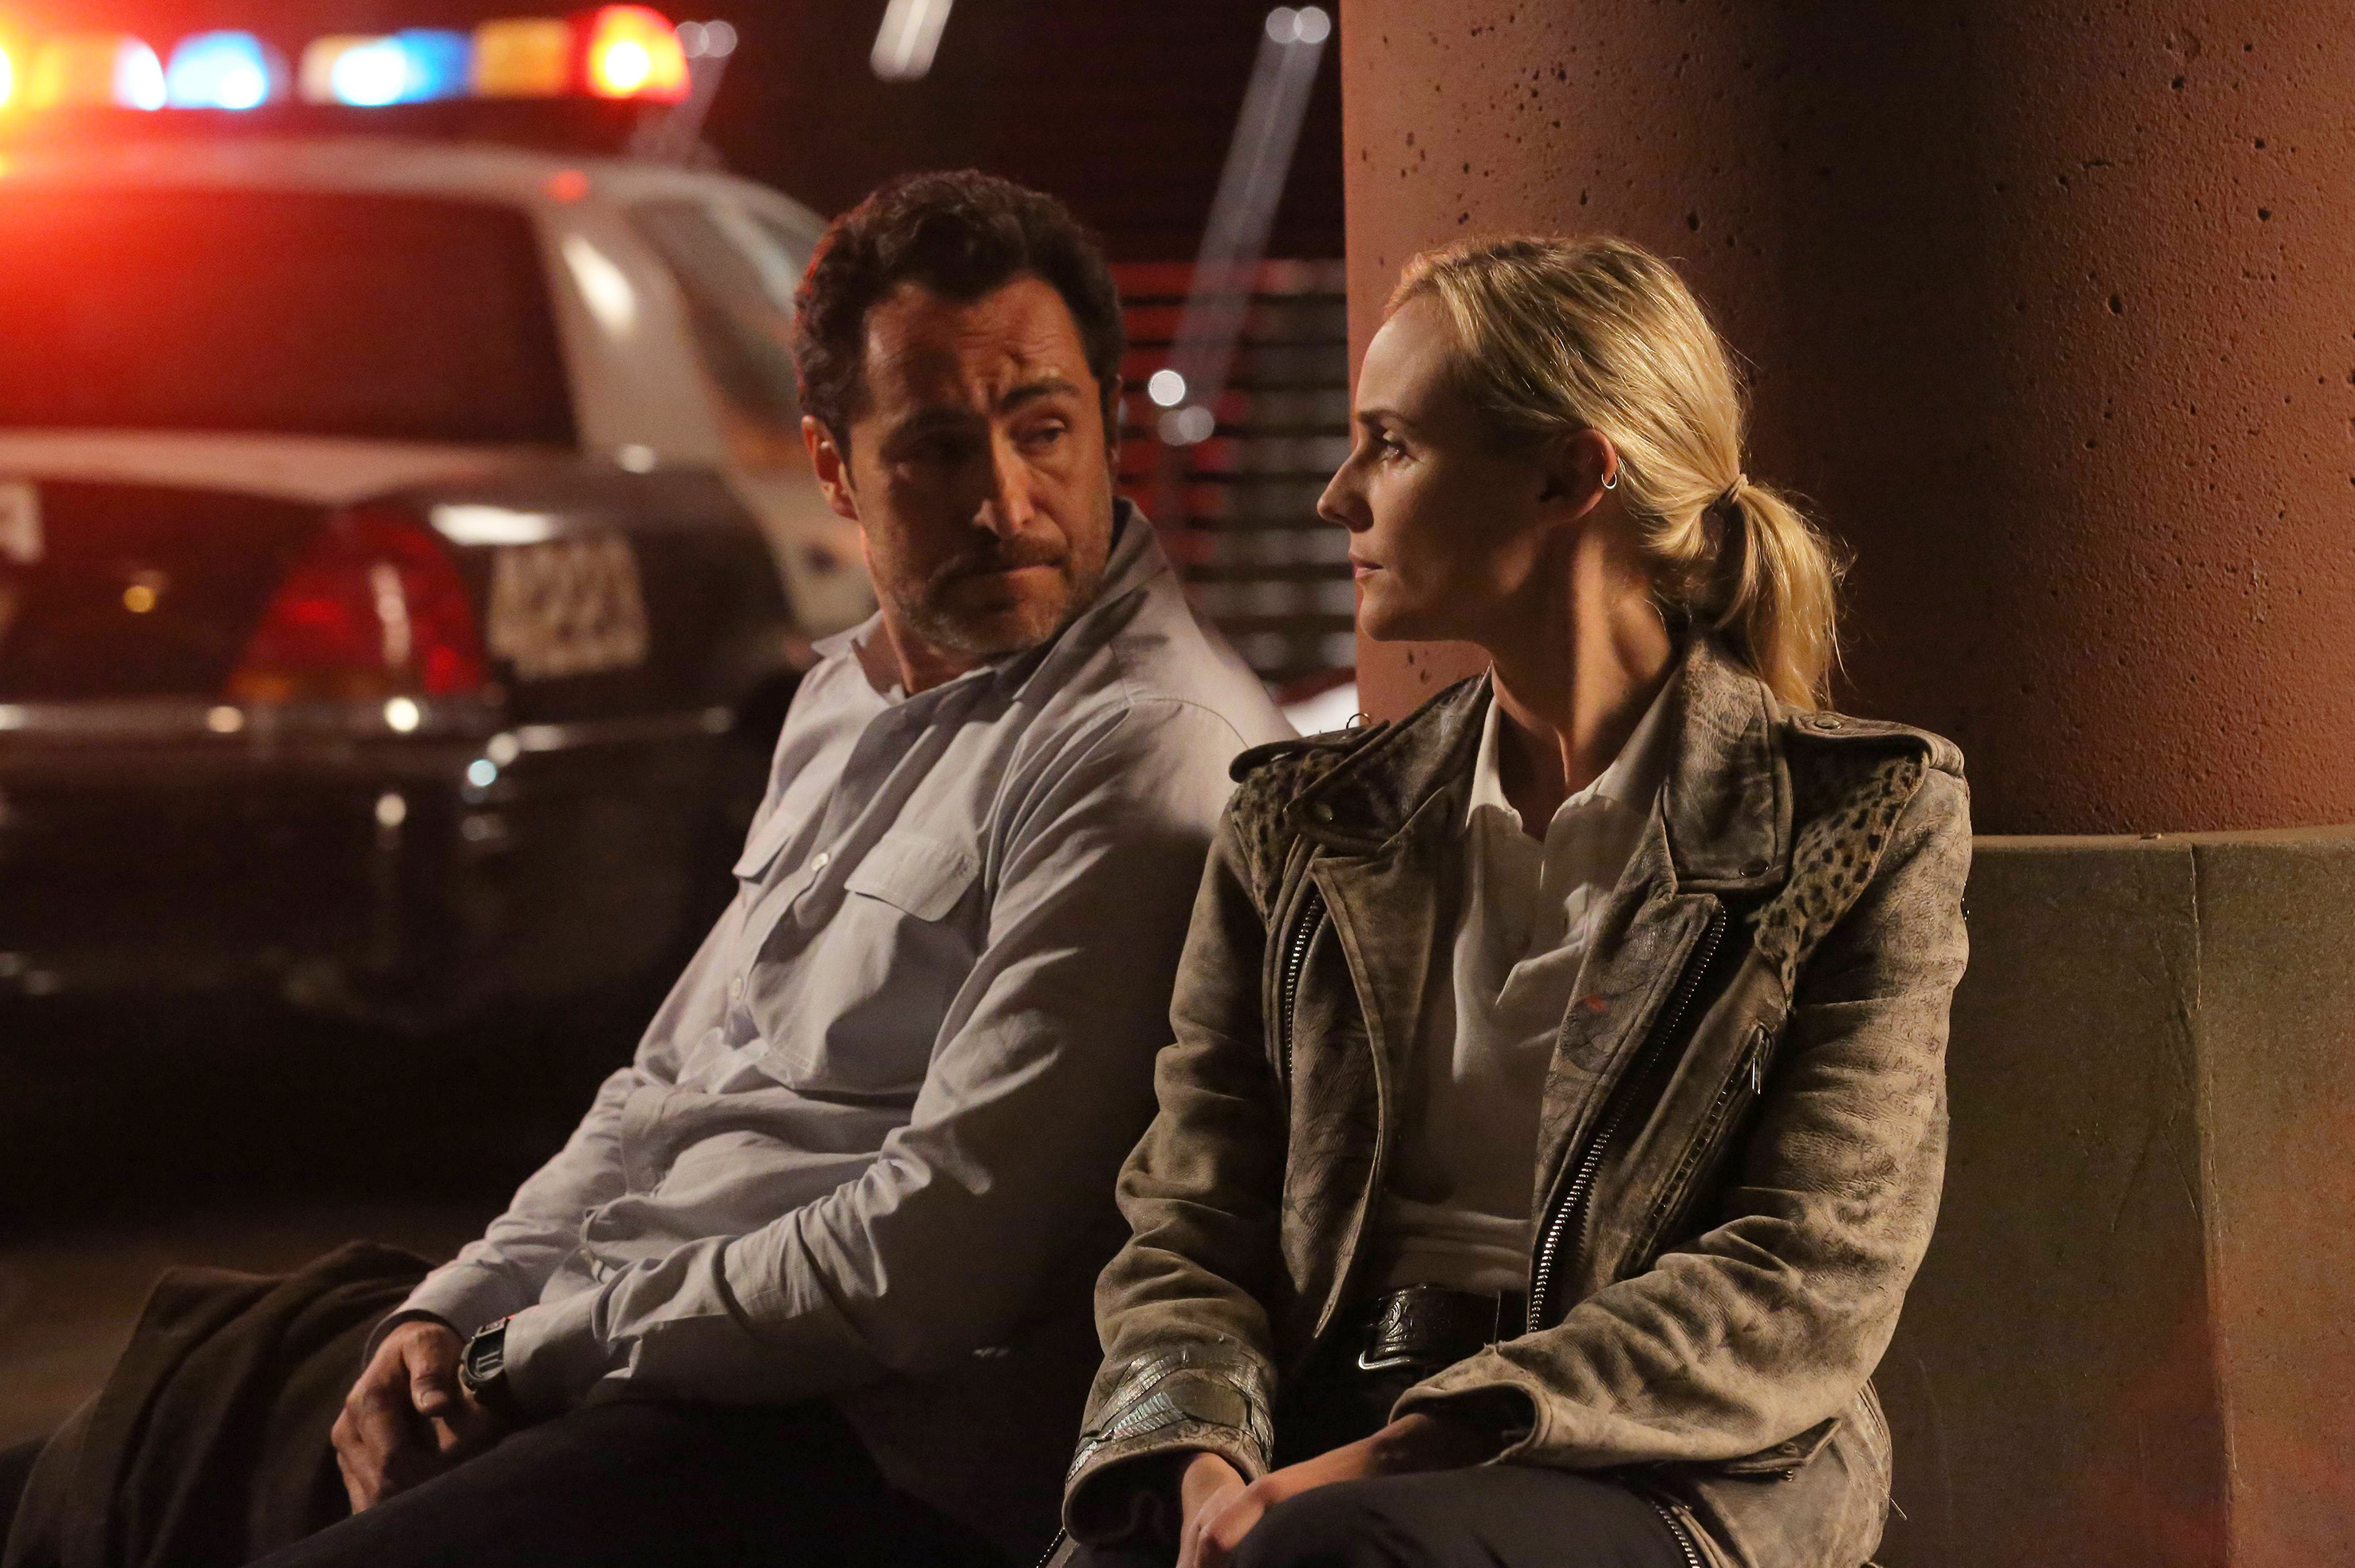 FX's 'The Bridge' Writer Fernanda Coppel Talks Depicting Mexico Authentically and Watching Demian Bichir Barf